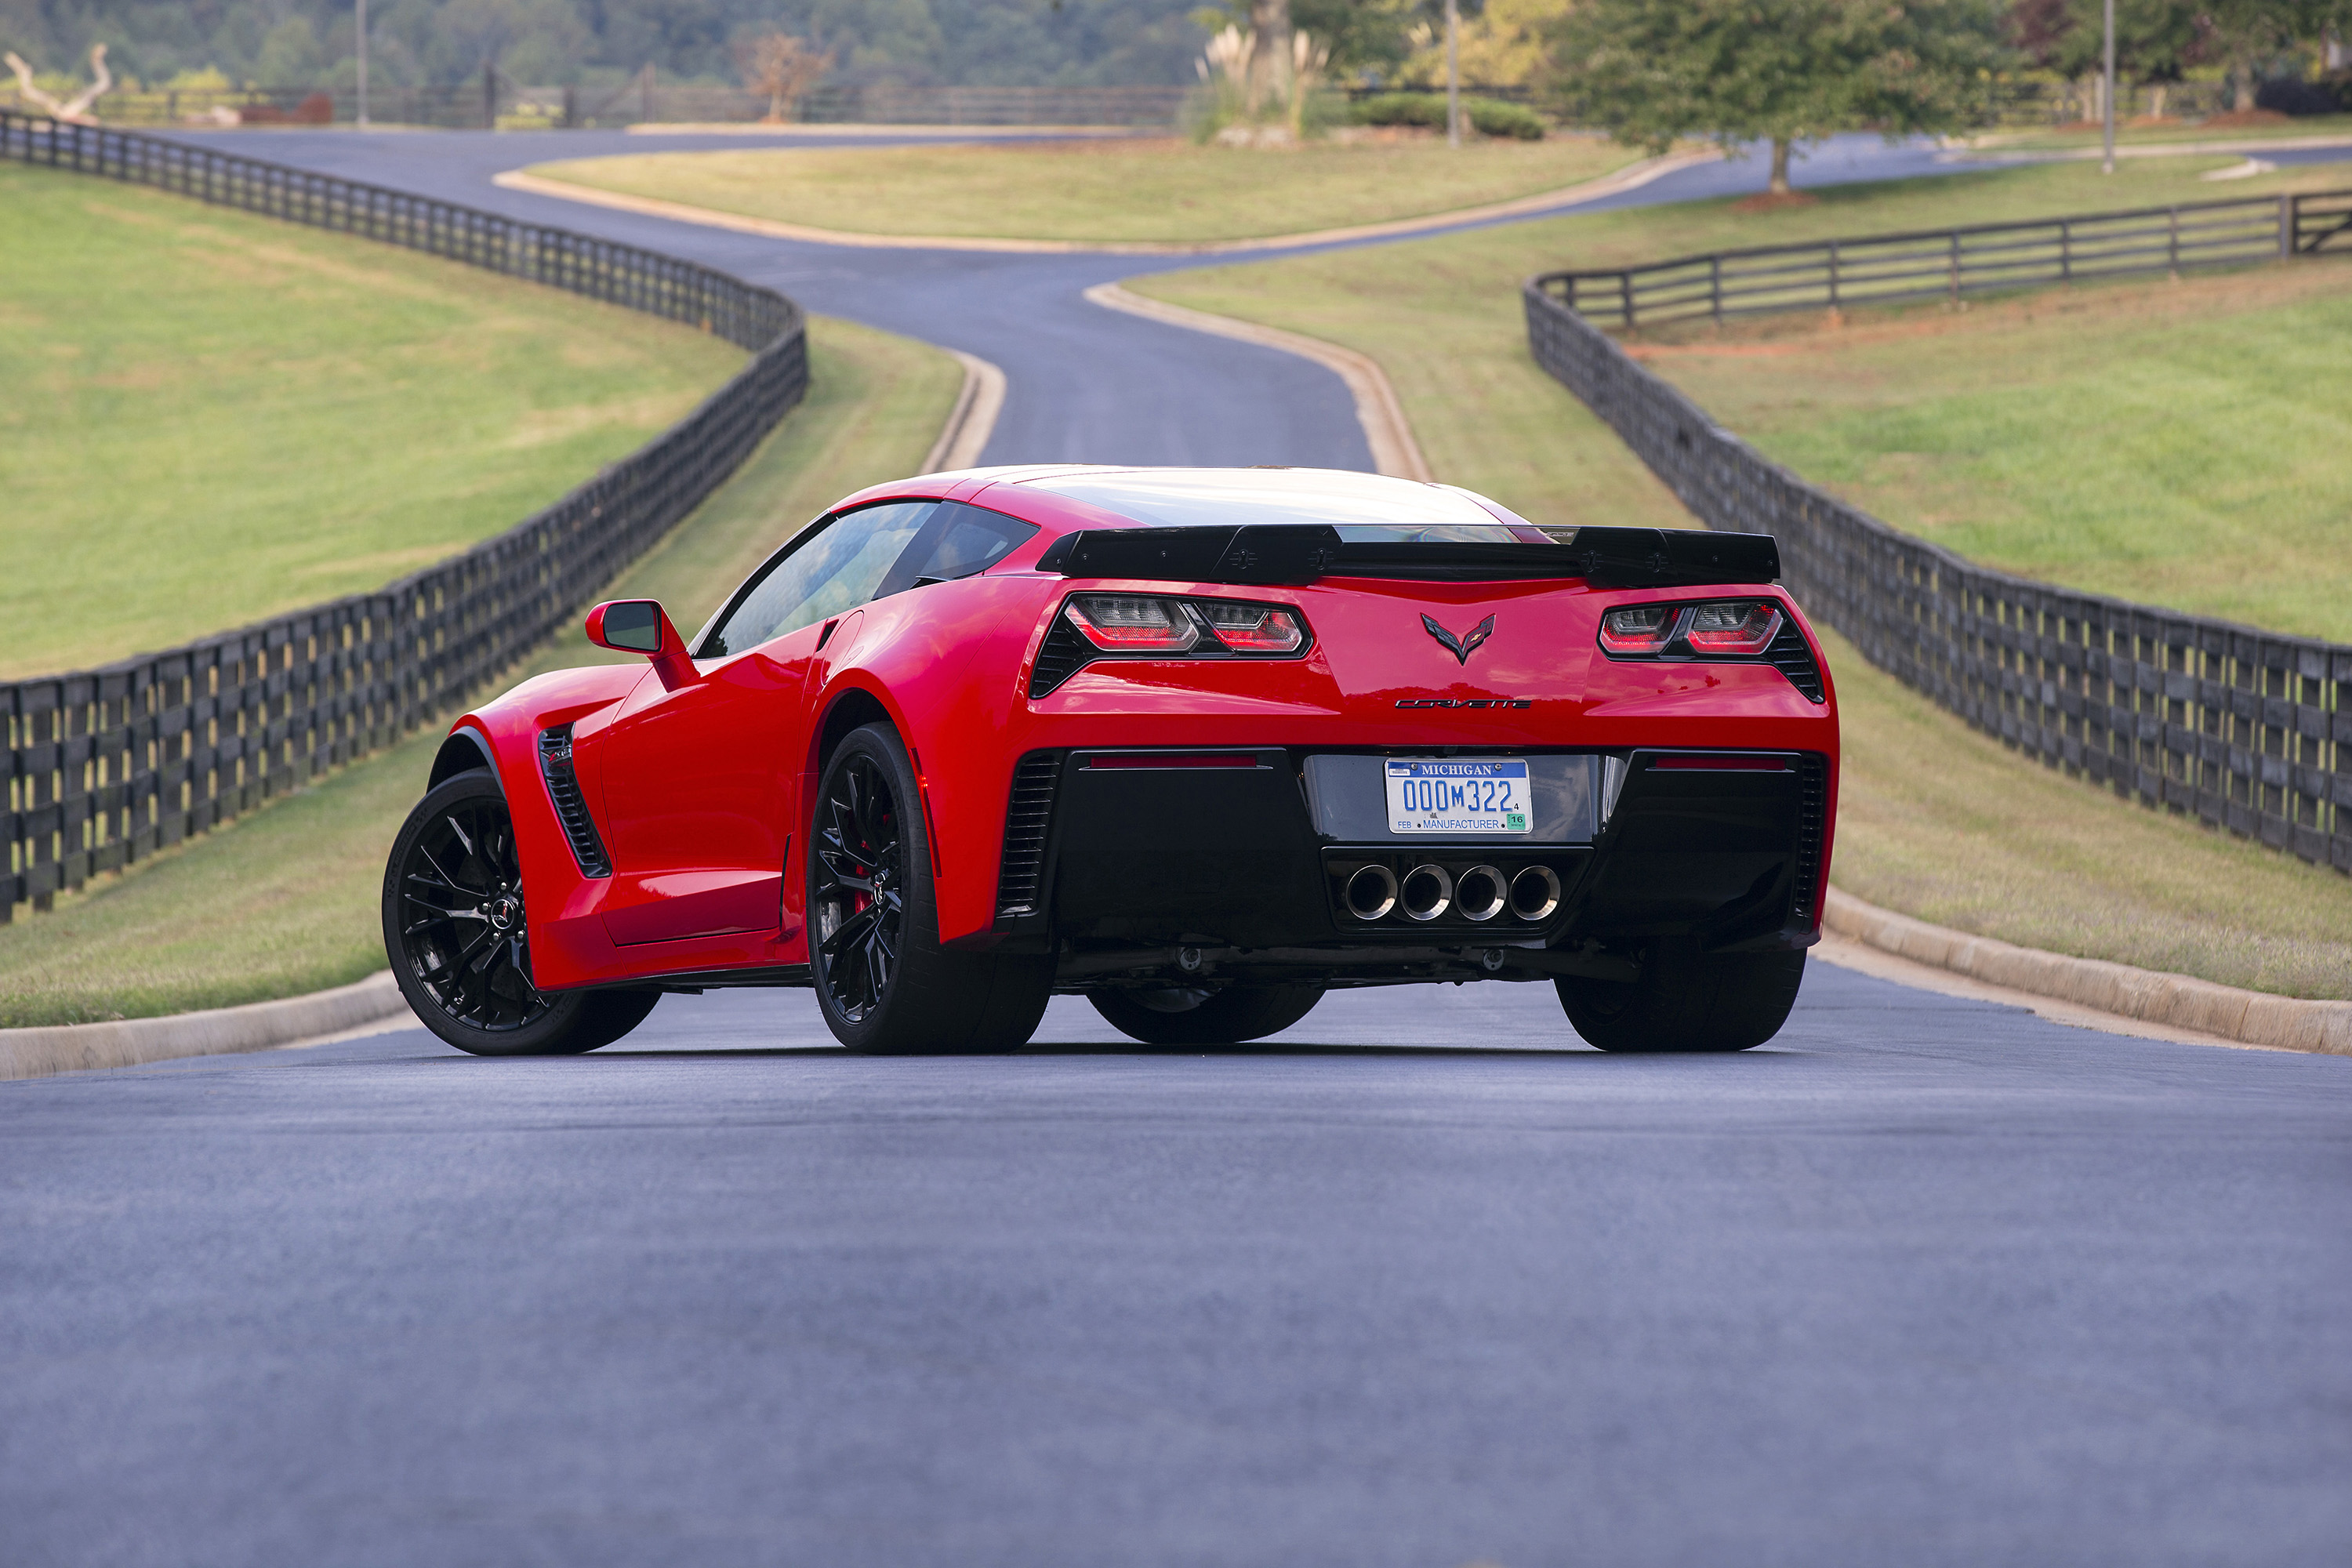 Chevrolet Offering Nearly $10,000 off of a 2017 Z06 - GM Inside News